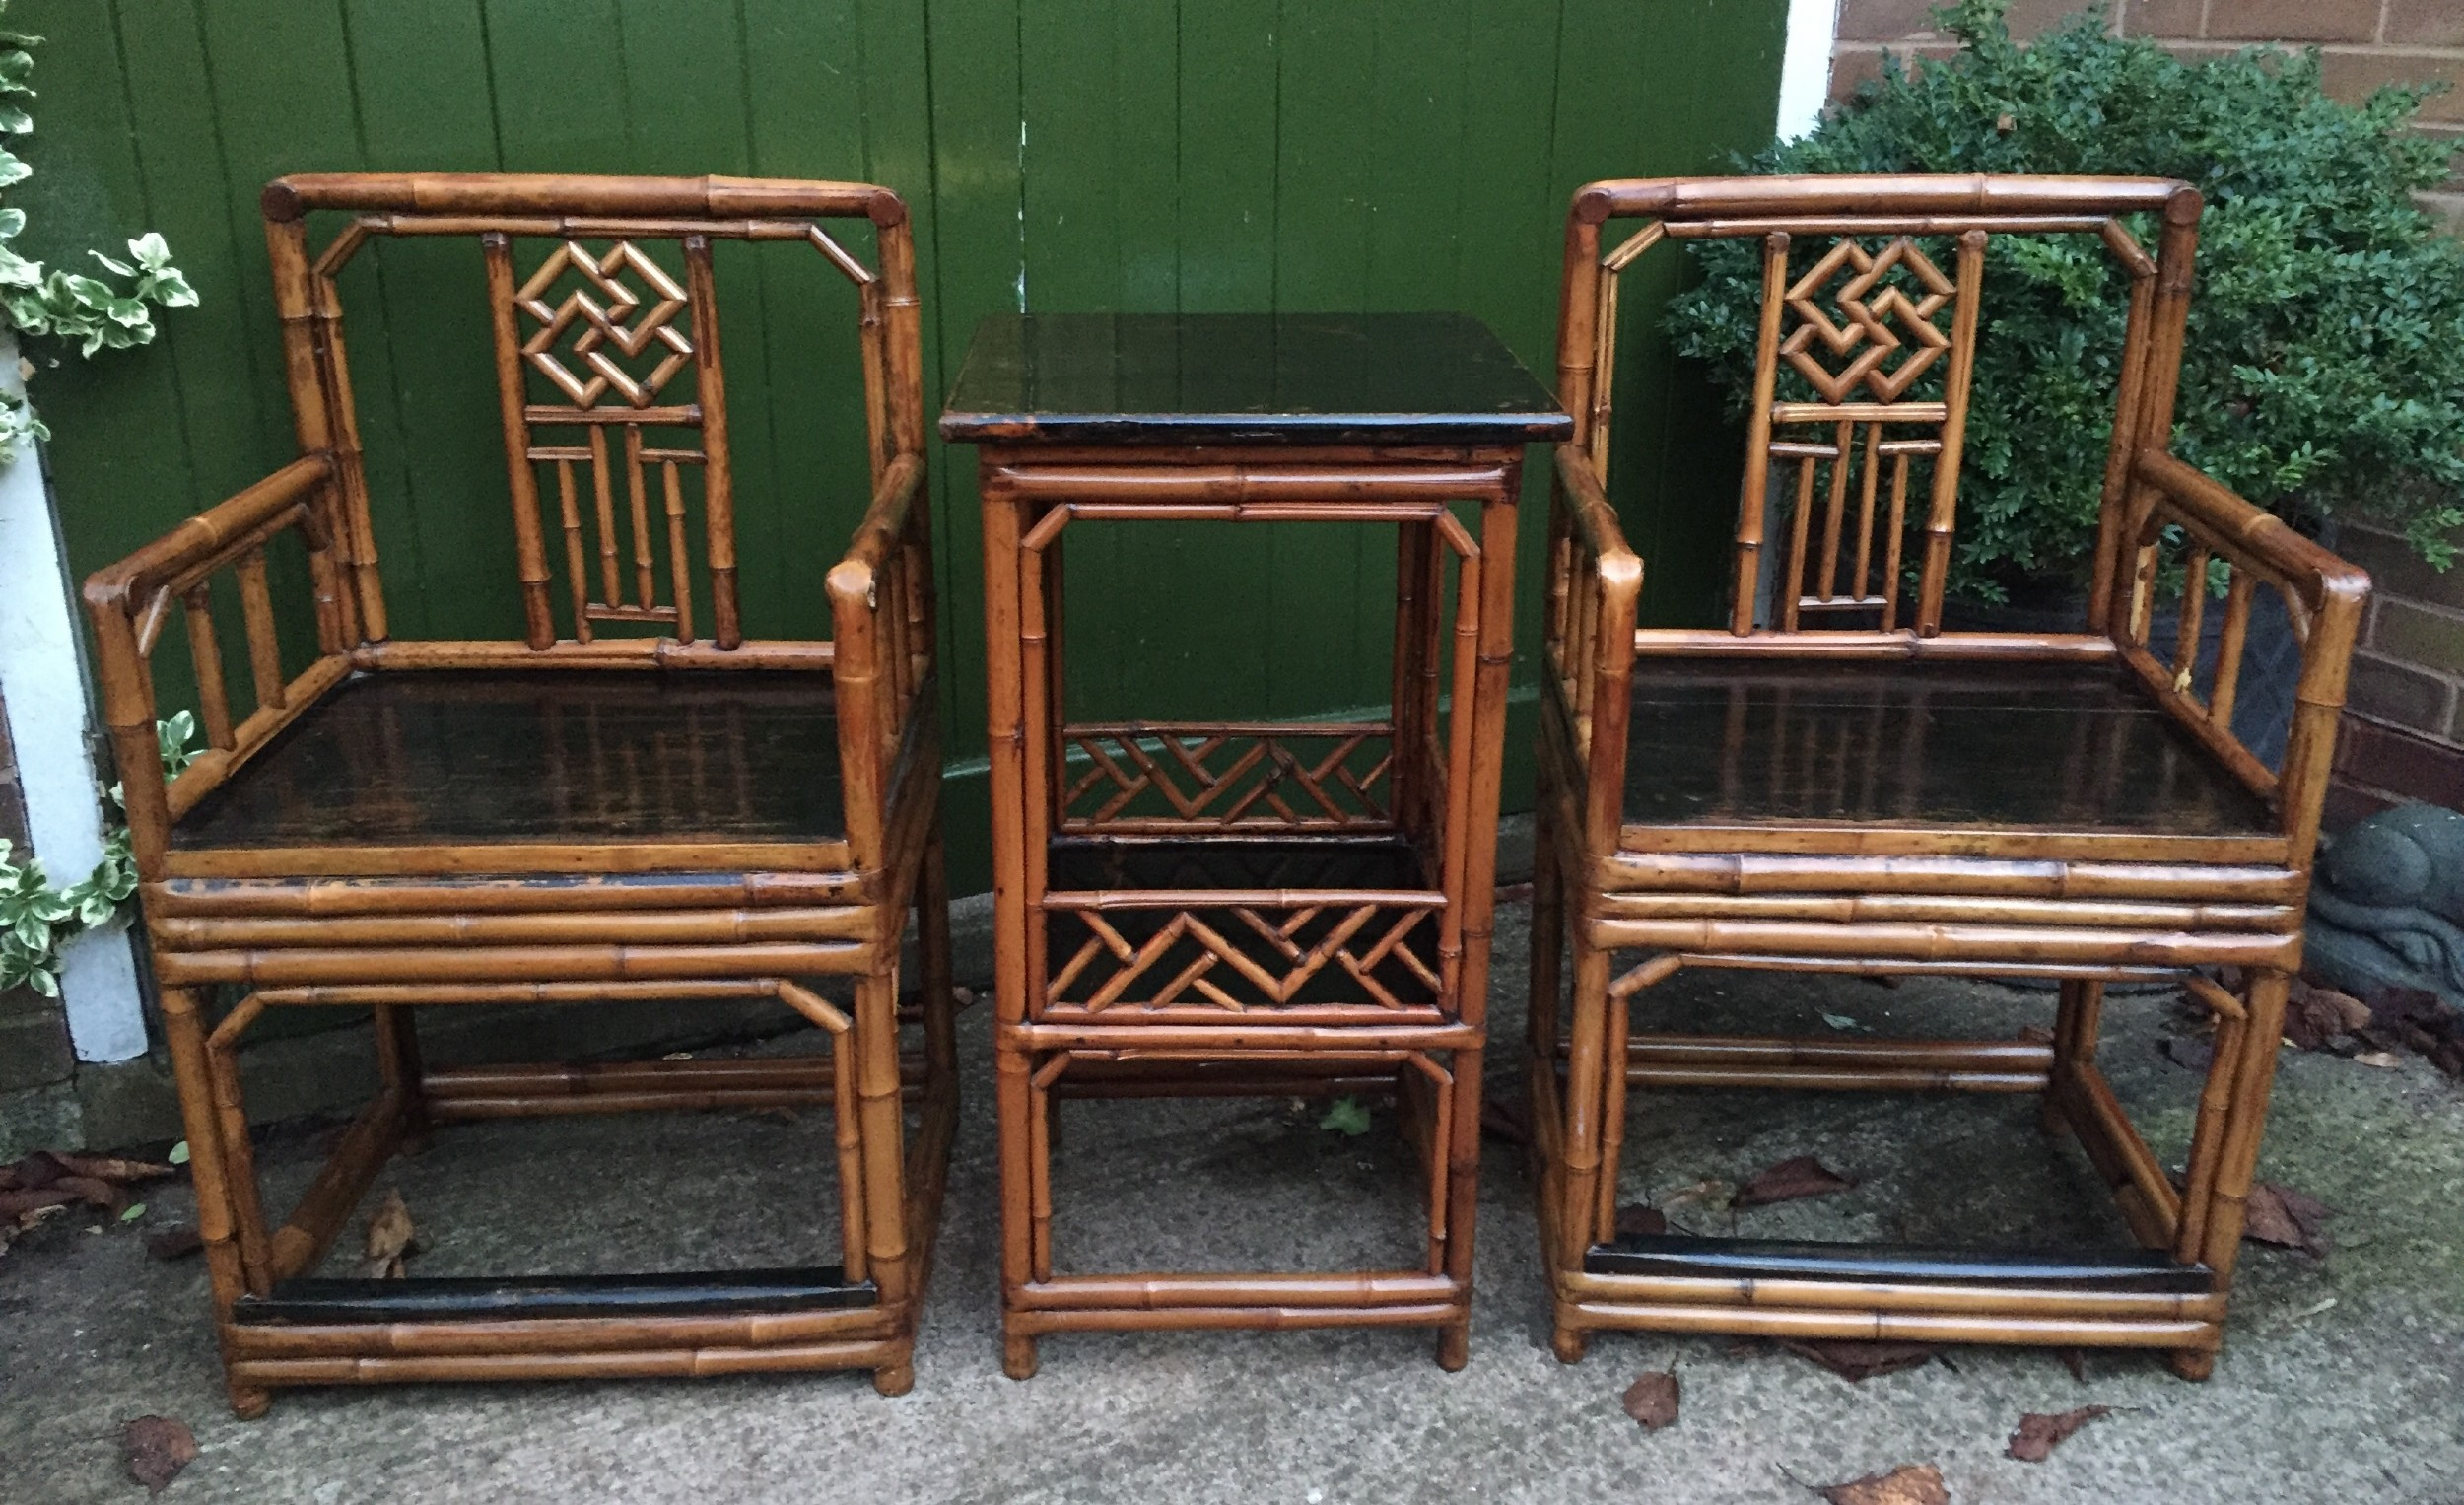 decorative pair of early c20th chinese polished bamboo and lacquer armchairs and table in the c18th manner